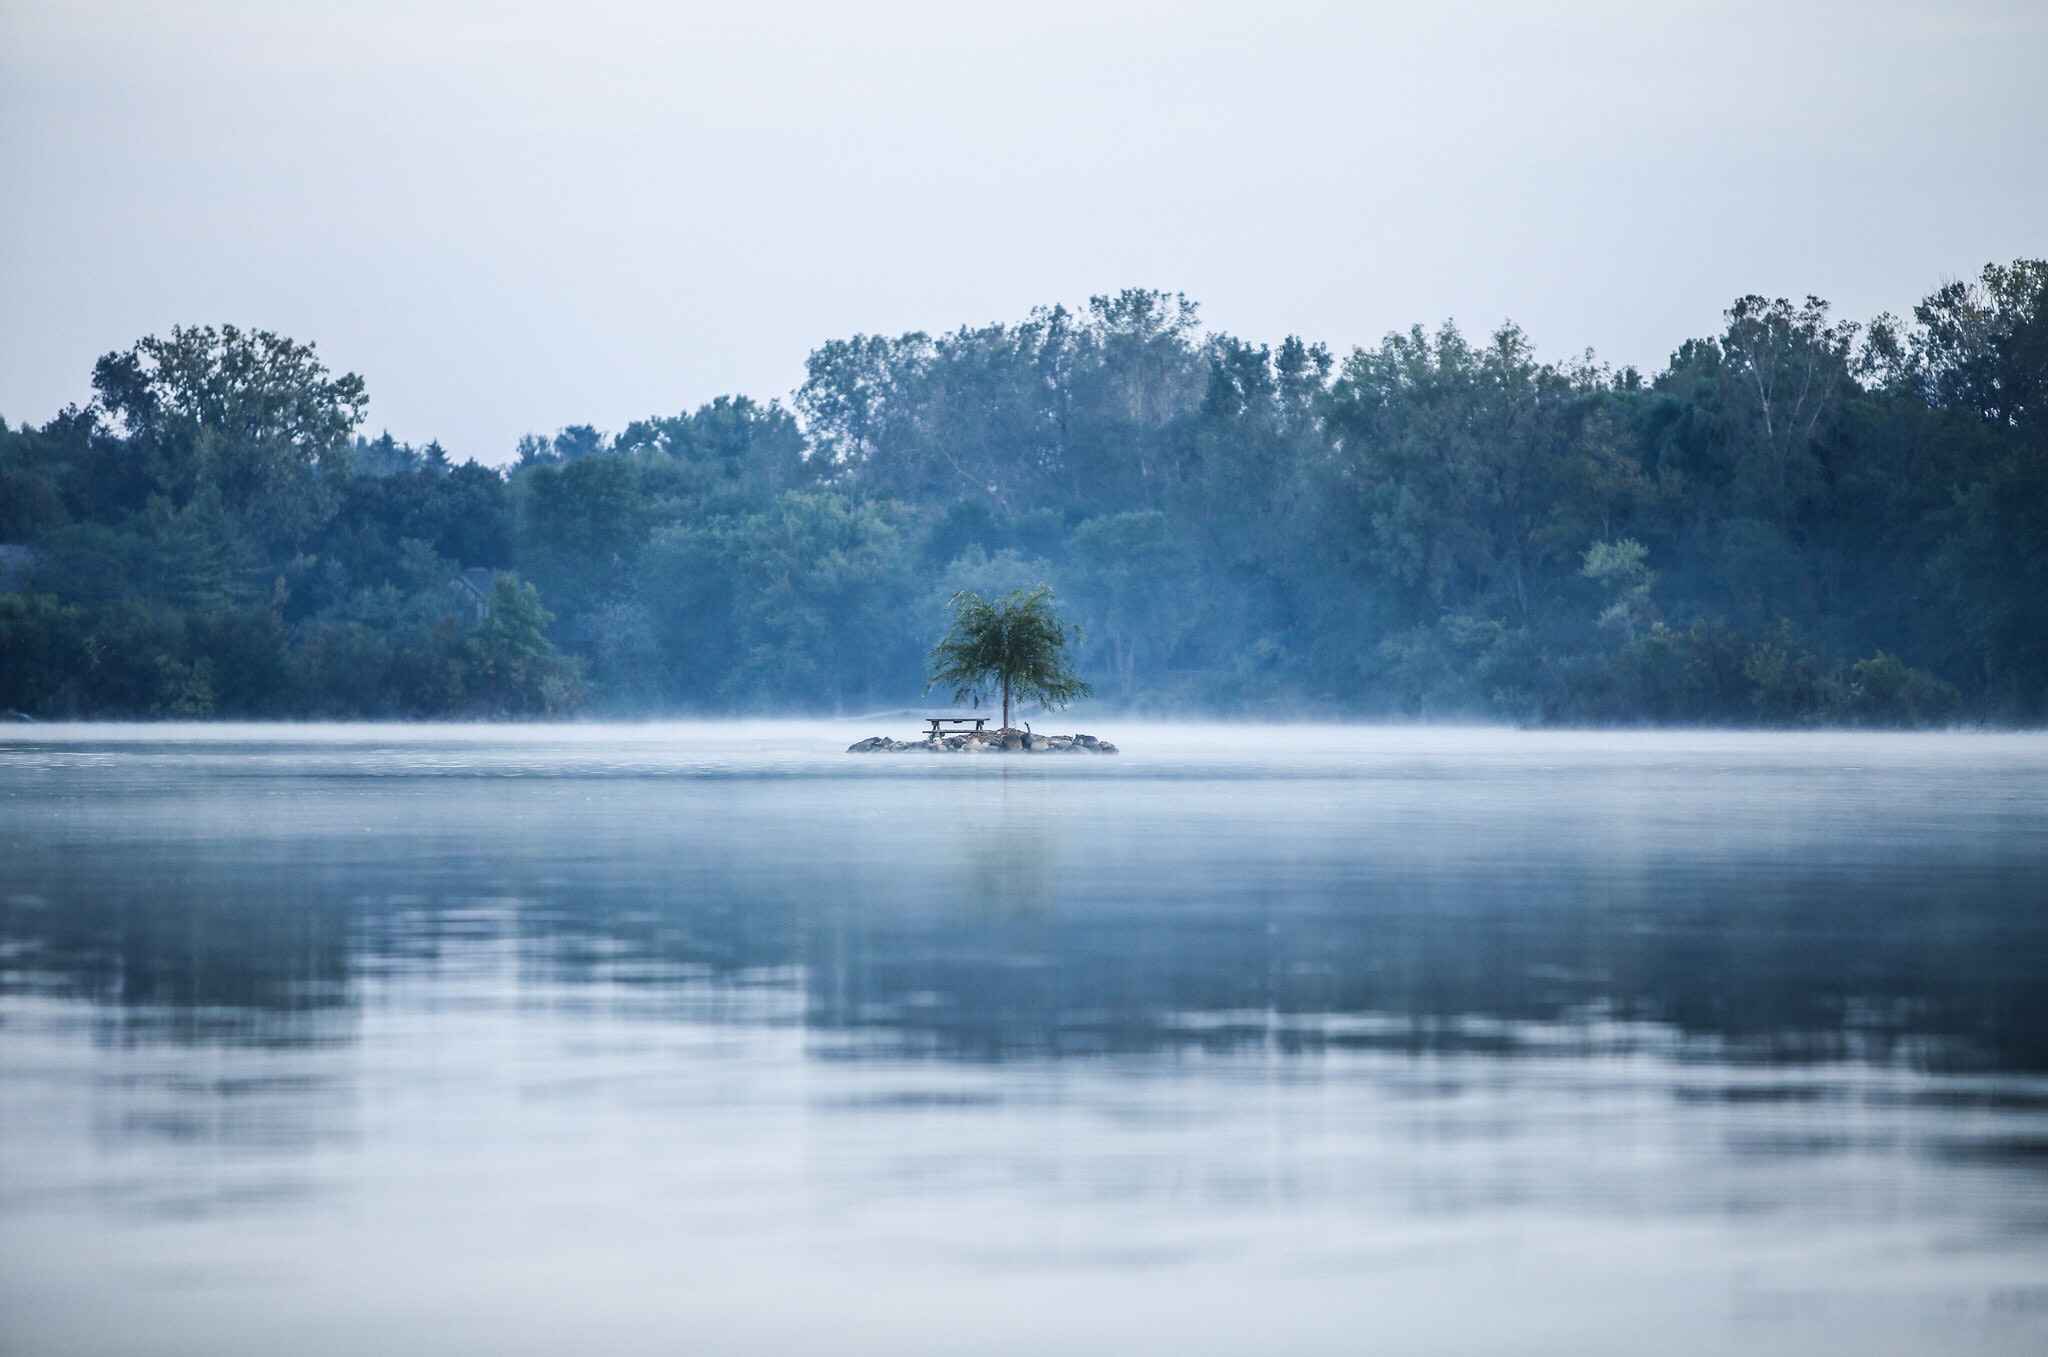 A small island with a bench and a tree in the middle of a misty lake